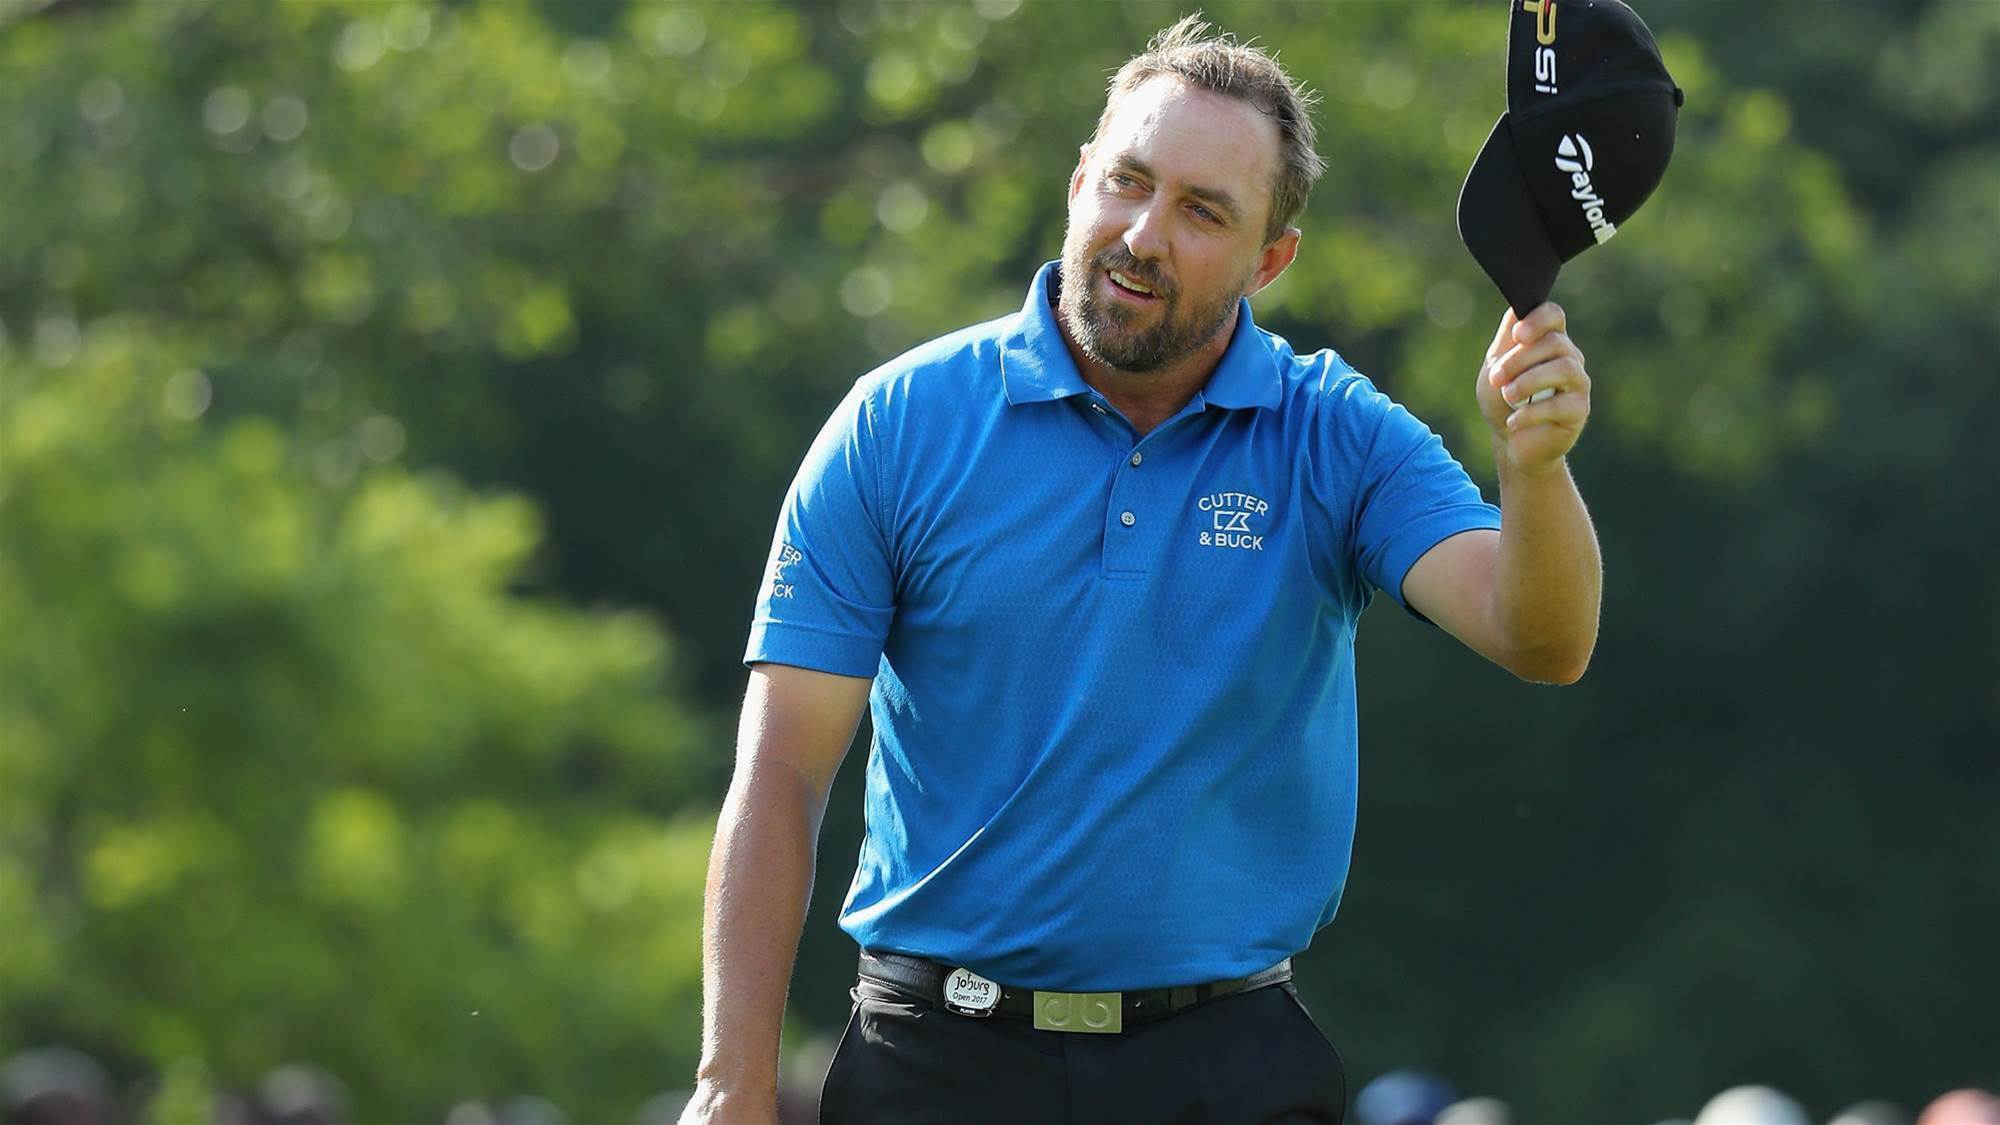 EURO TOUR: Fichardt's win drought ends in water-logged Joburg